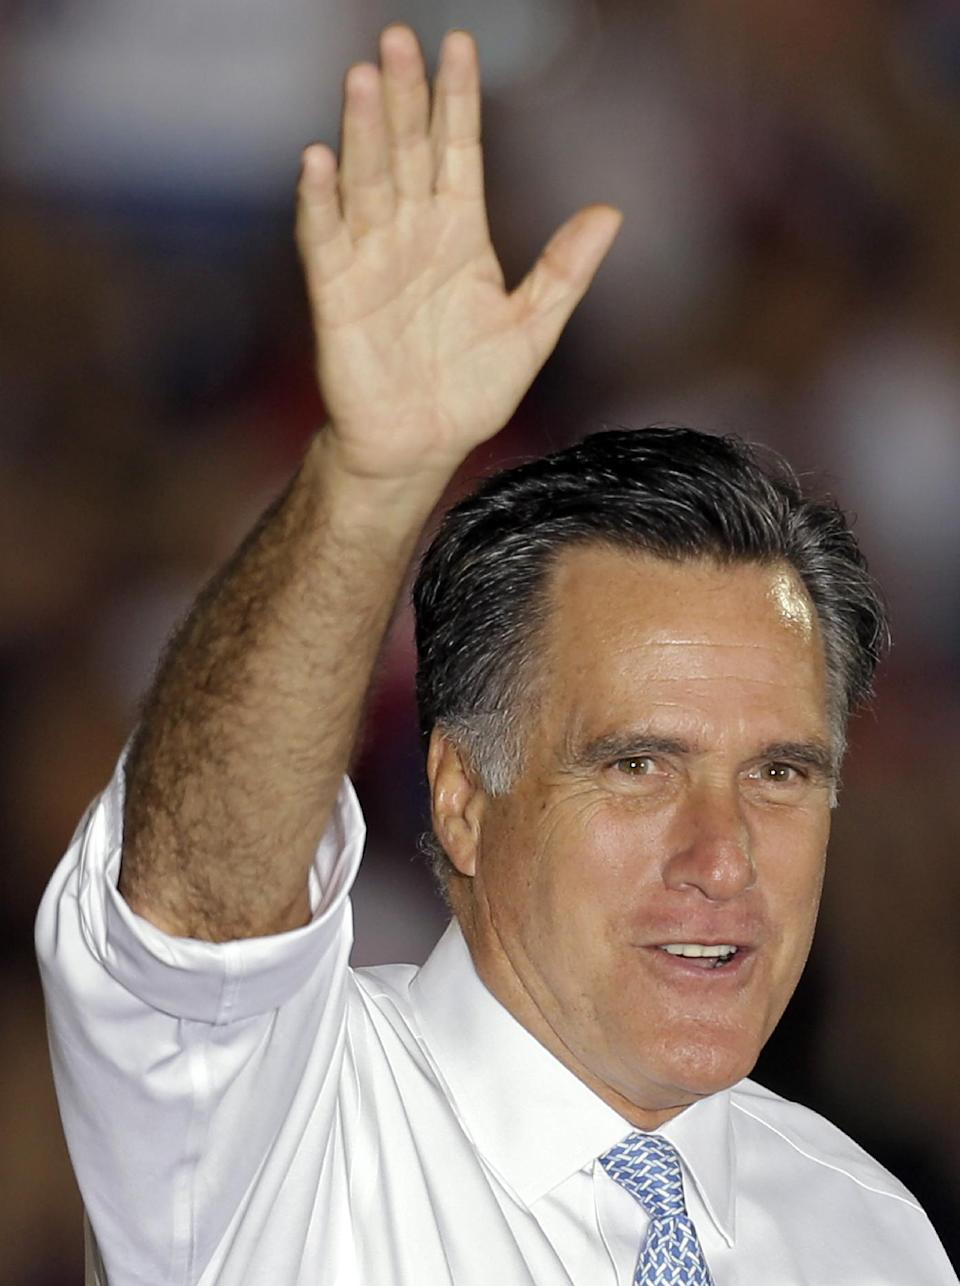 Republican presidential candidate and former Massachusetts Gov. Mitt Romney waves to supporters after a campaign speech Saturday, Oct. 27, 2012, in Land O' Lakes, Fla. (AP Photo/Chris O'Meara)